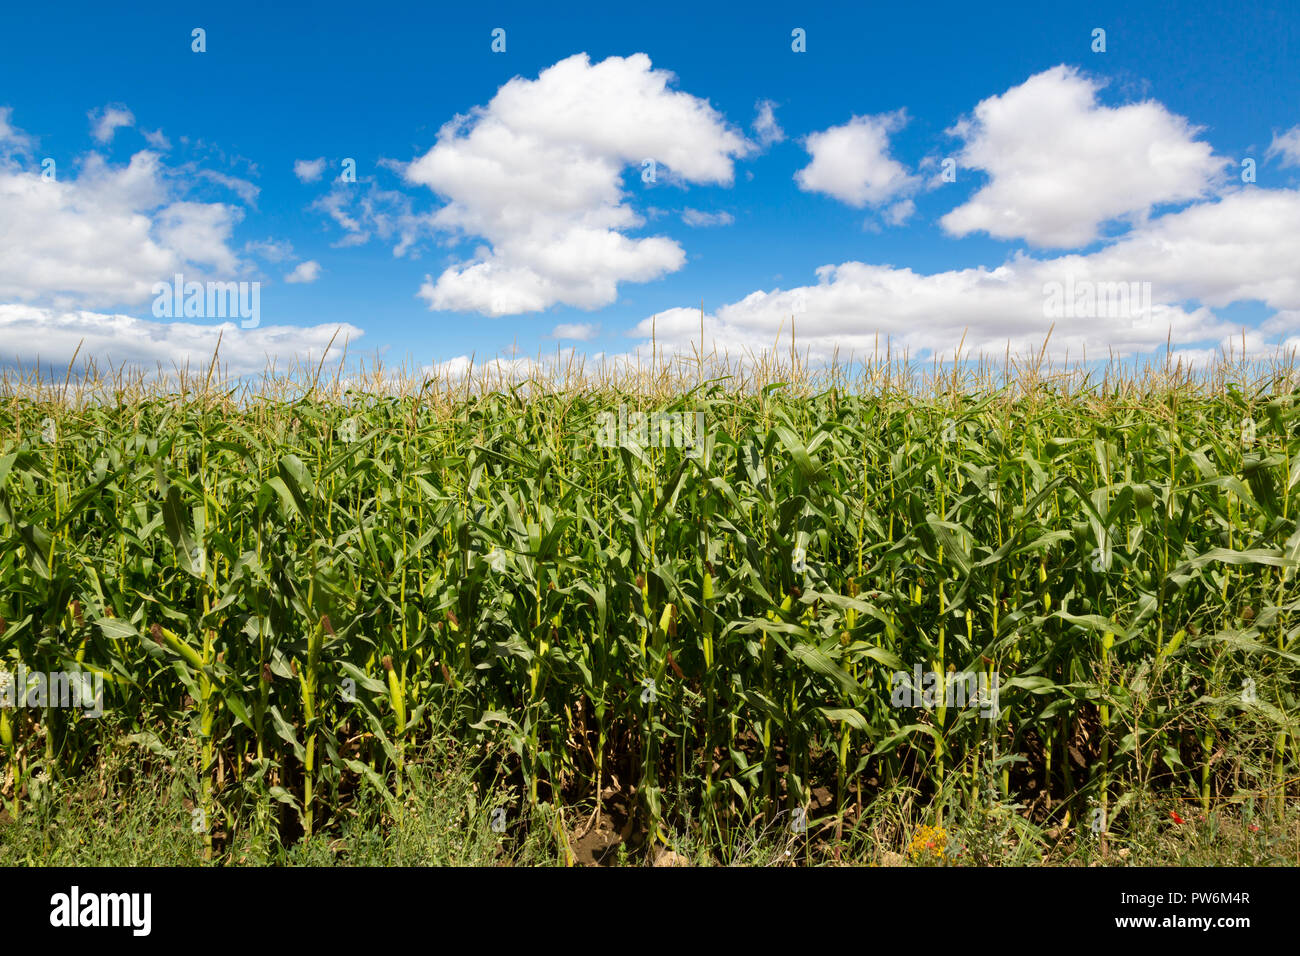 Camino de Santiago (Spain) - Fields and clouds along the way of St.James, in the spanish meseta - Stock Image